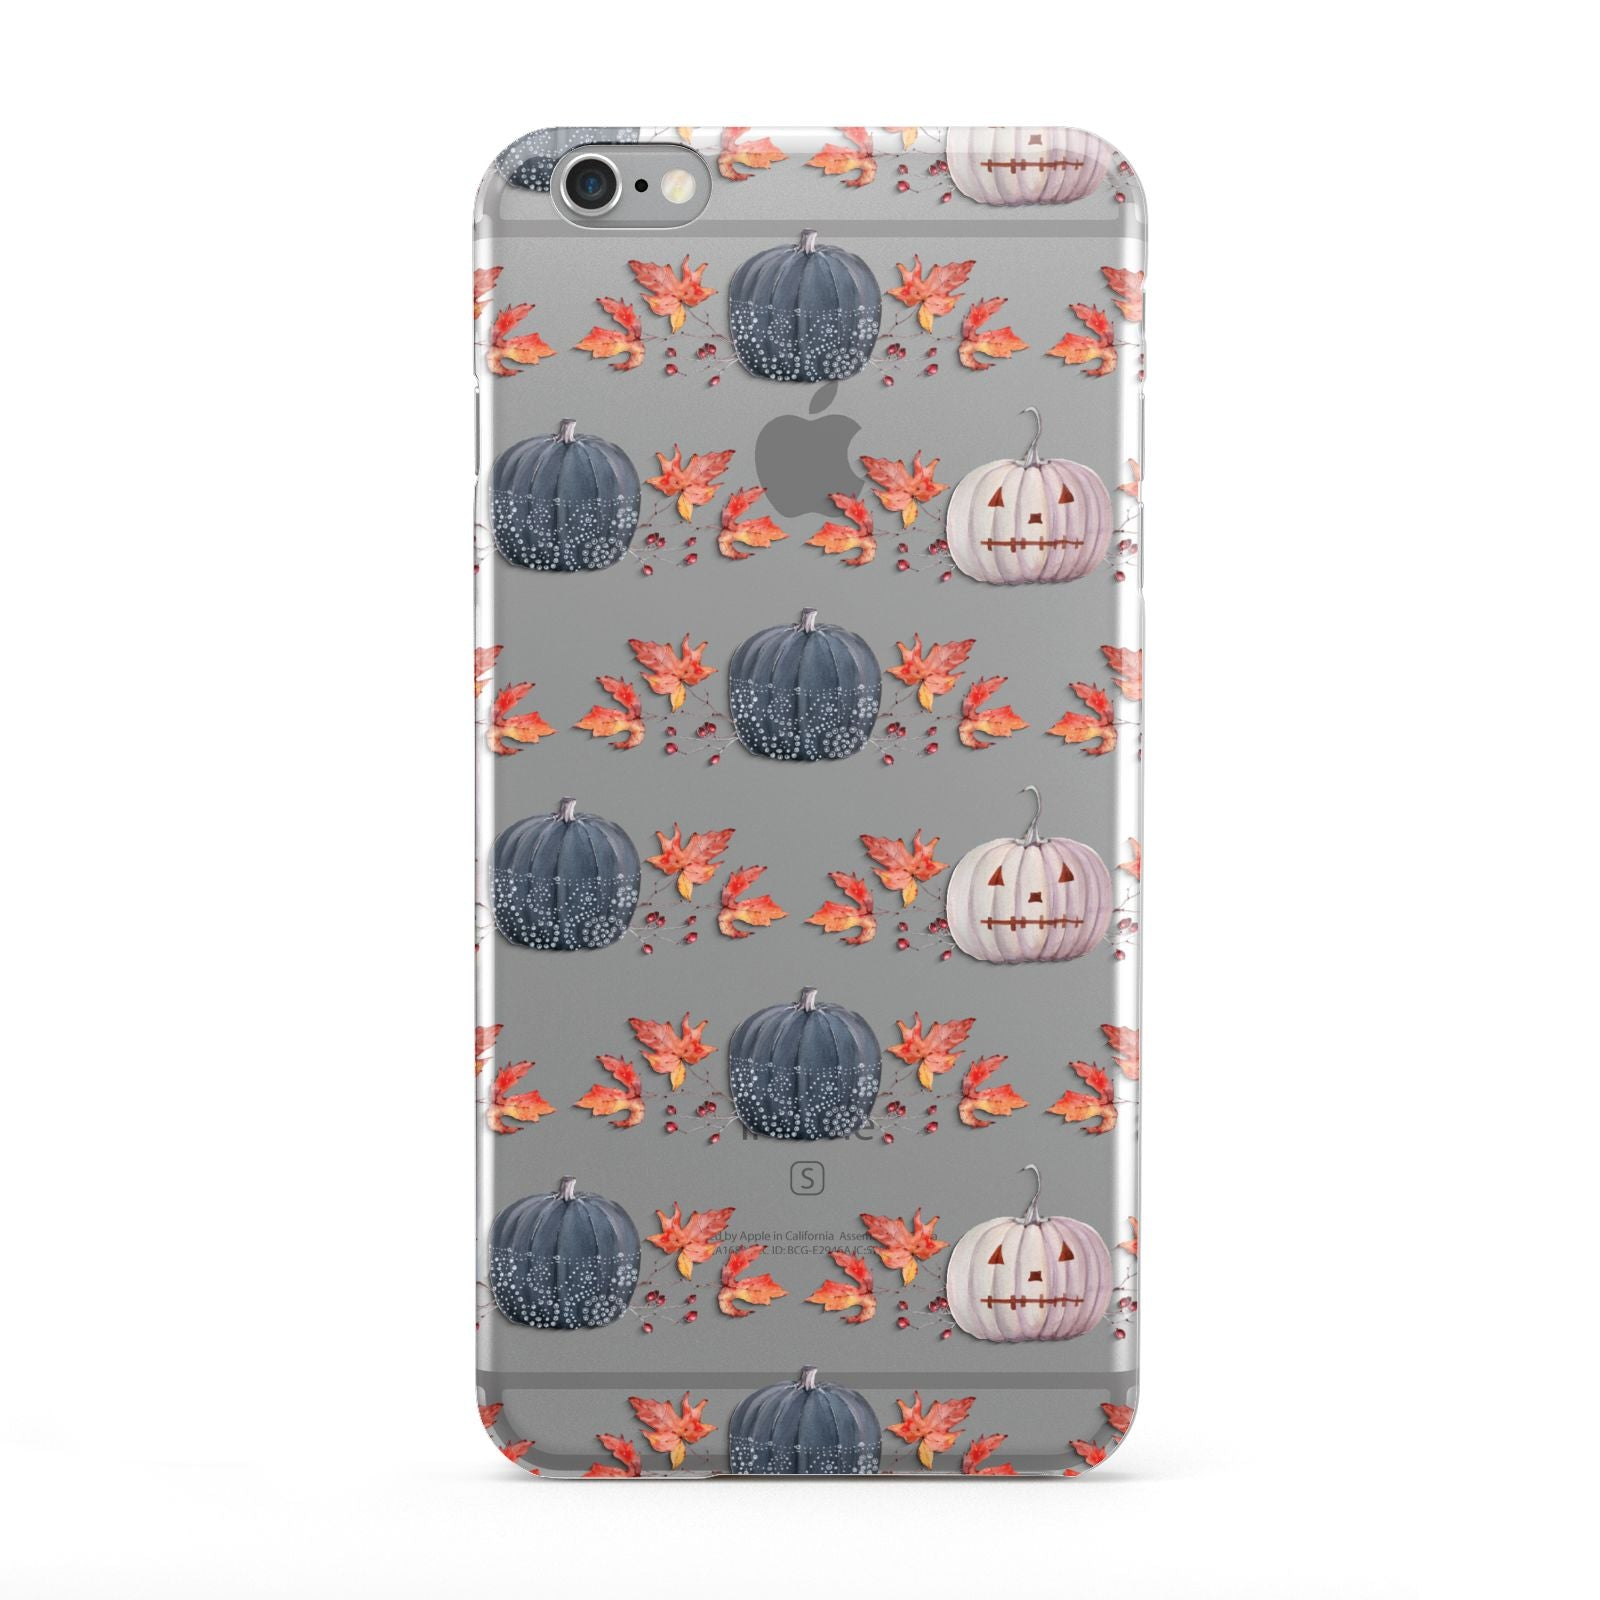 Pumpkin Autumn Leaves Apple iPhone 6 Plus Case